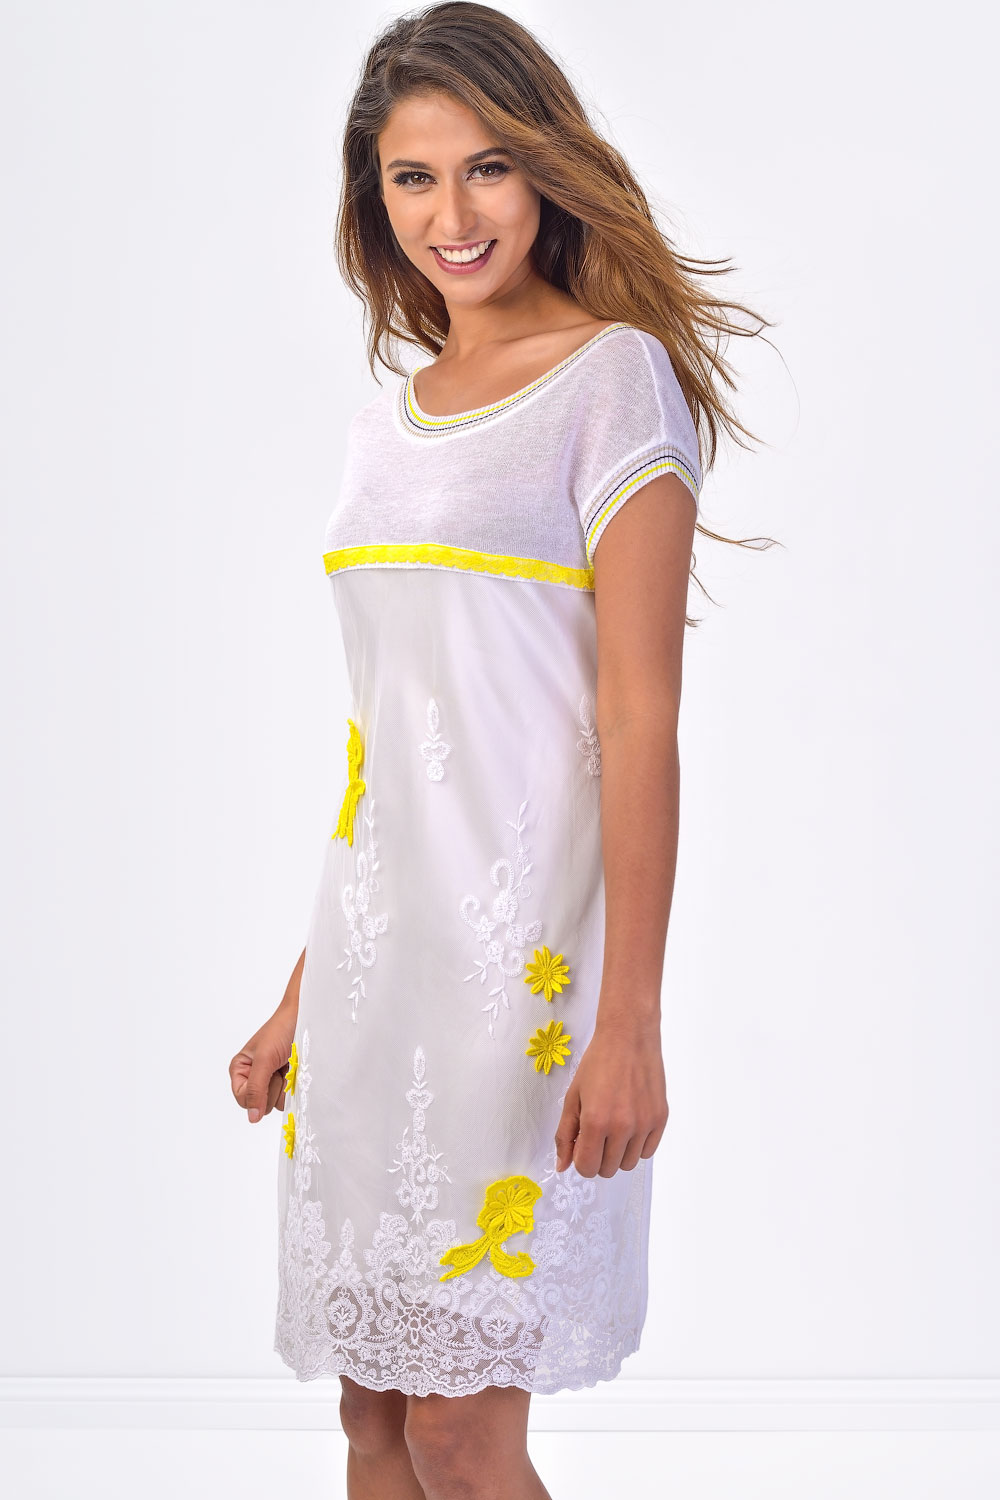 No Na Light Feminine Lace Dress With Yellow Flowers Claddio